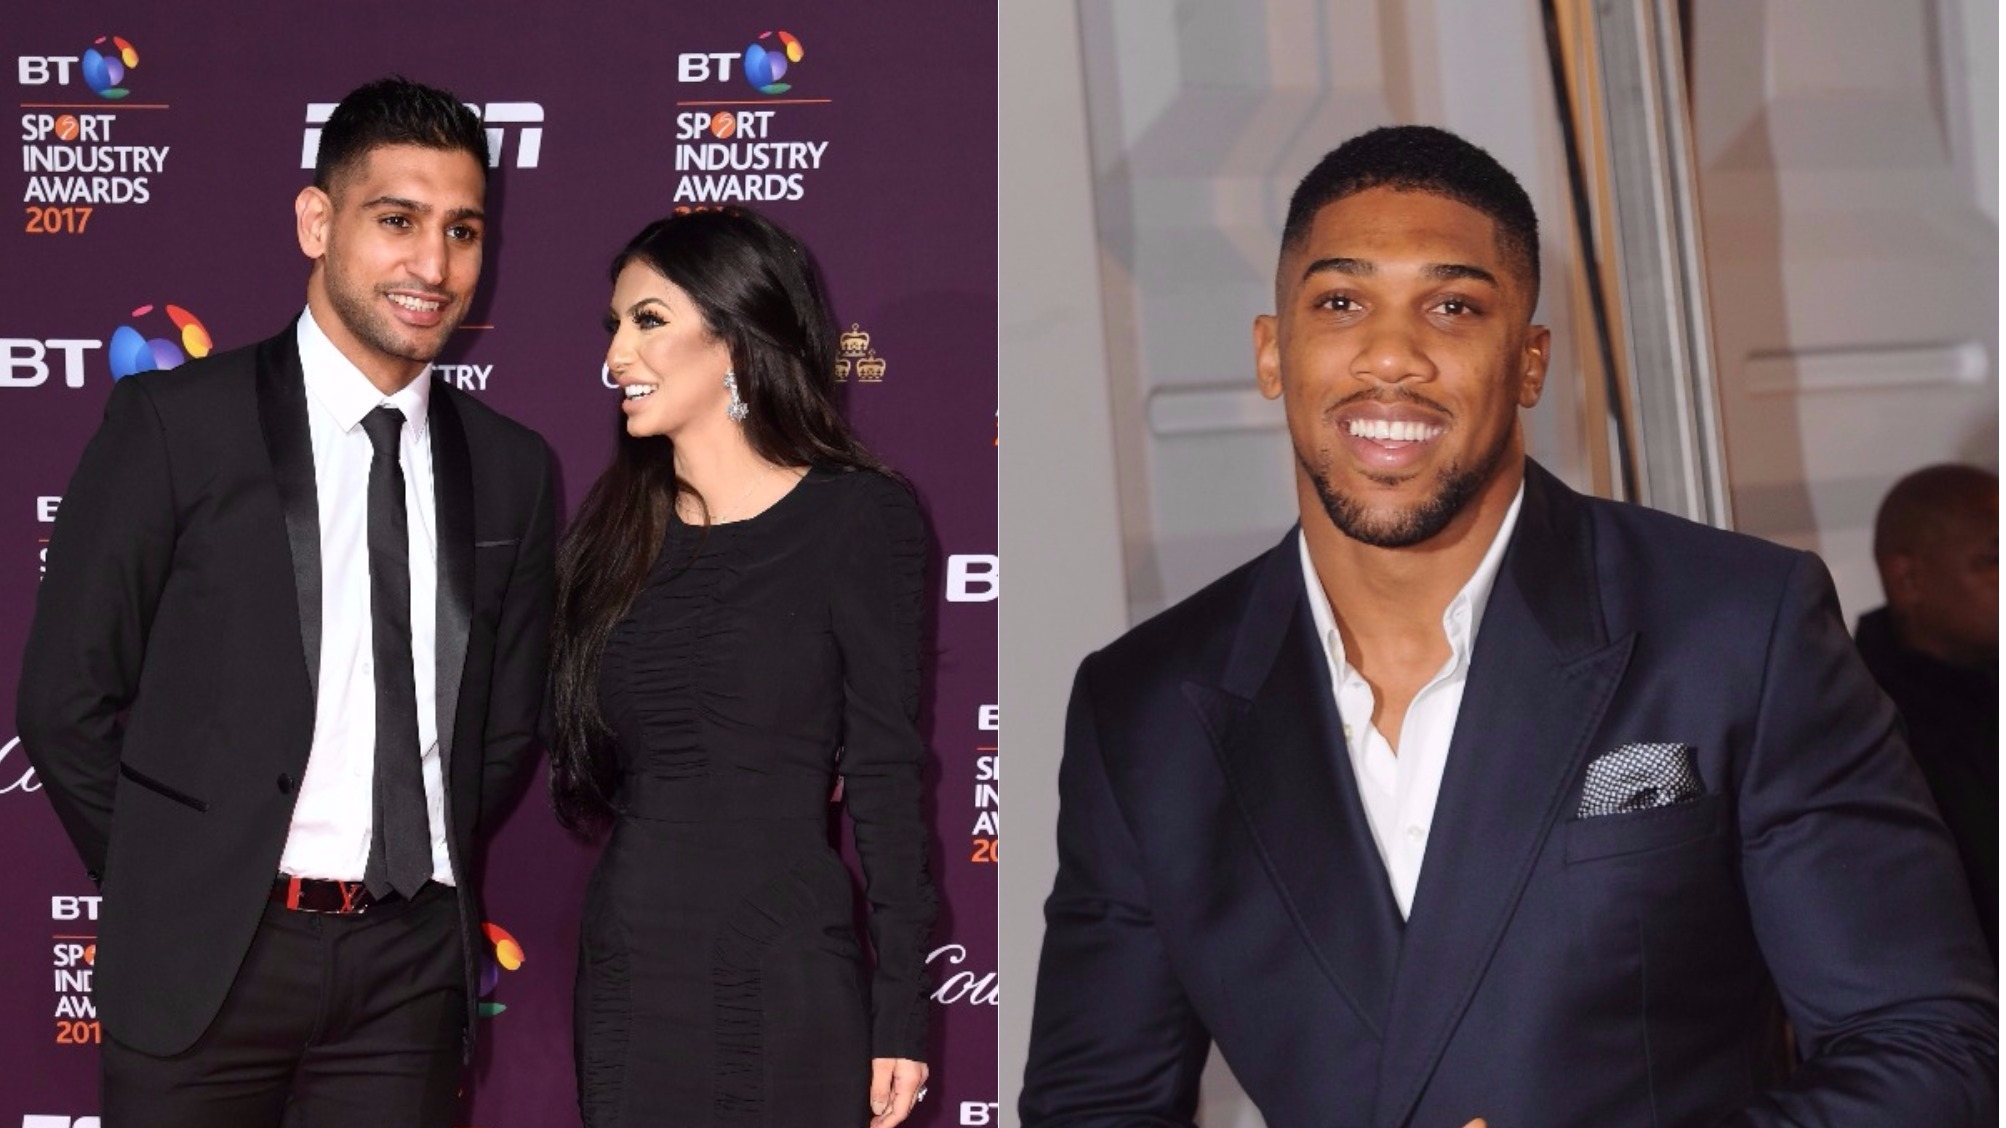 Anthony Joshua Has Responded To Amir Khan's Twitter Claims